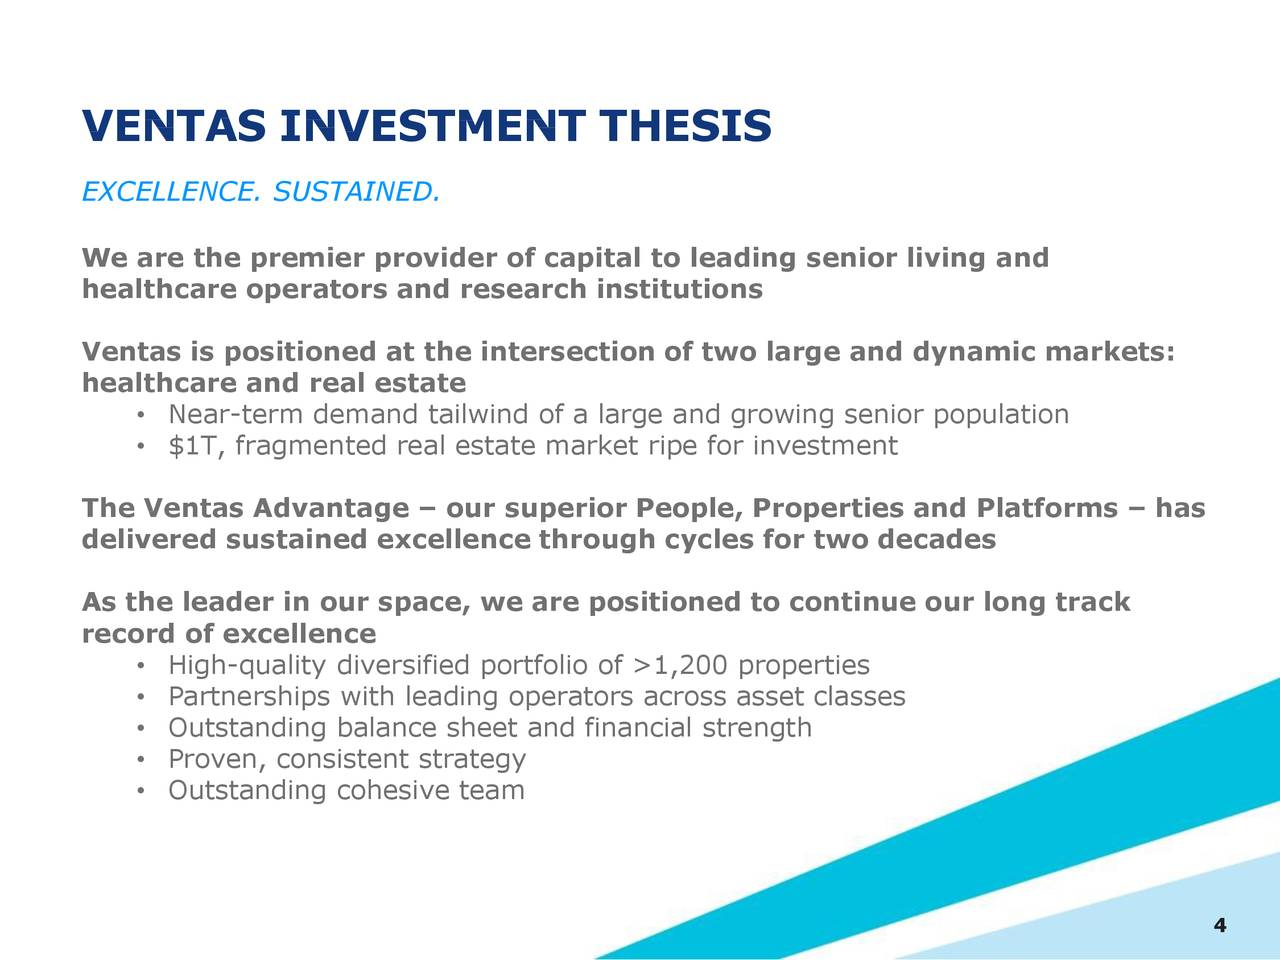 citibank investment thesis Investing accounts what do analysts think about citigroup stock berenberg's thesis is based in part on citi's opportunity to continue increasing the amount.